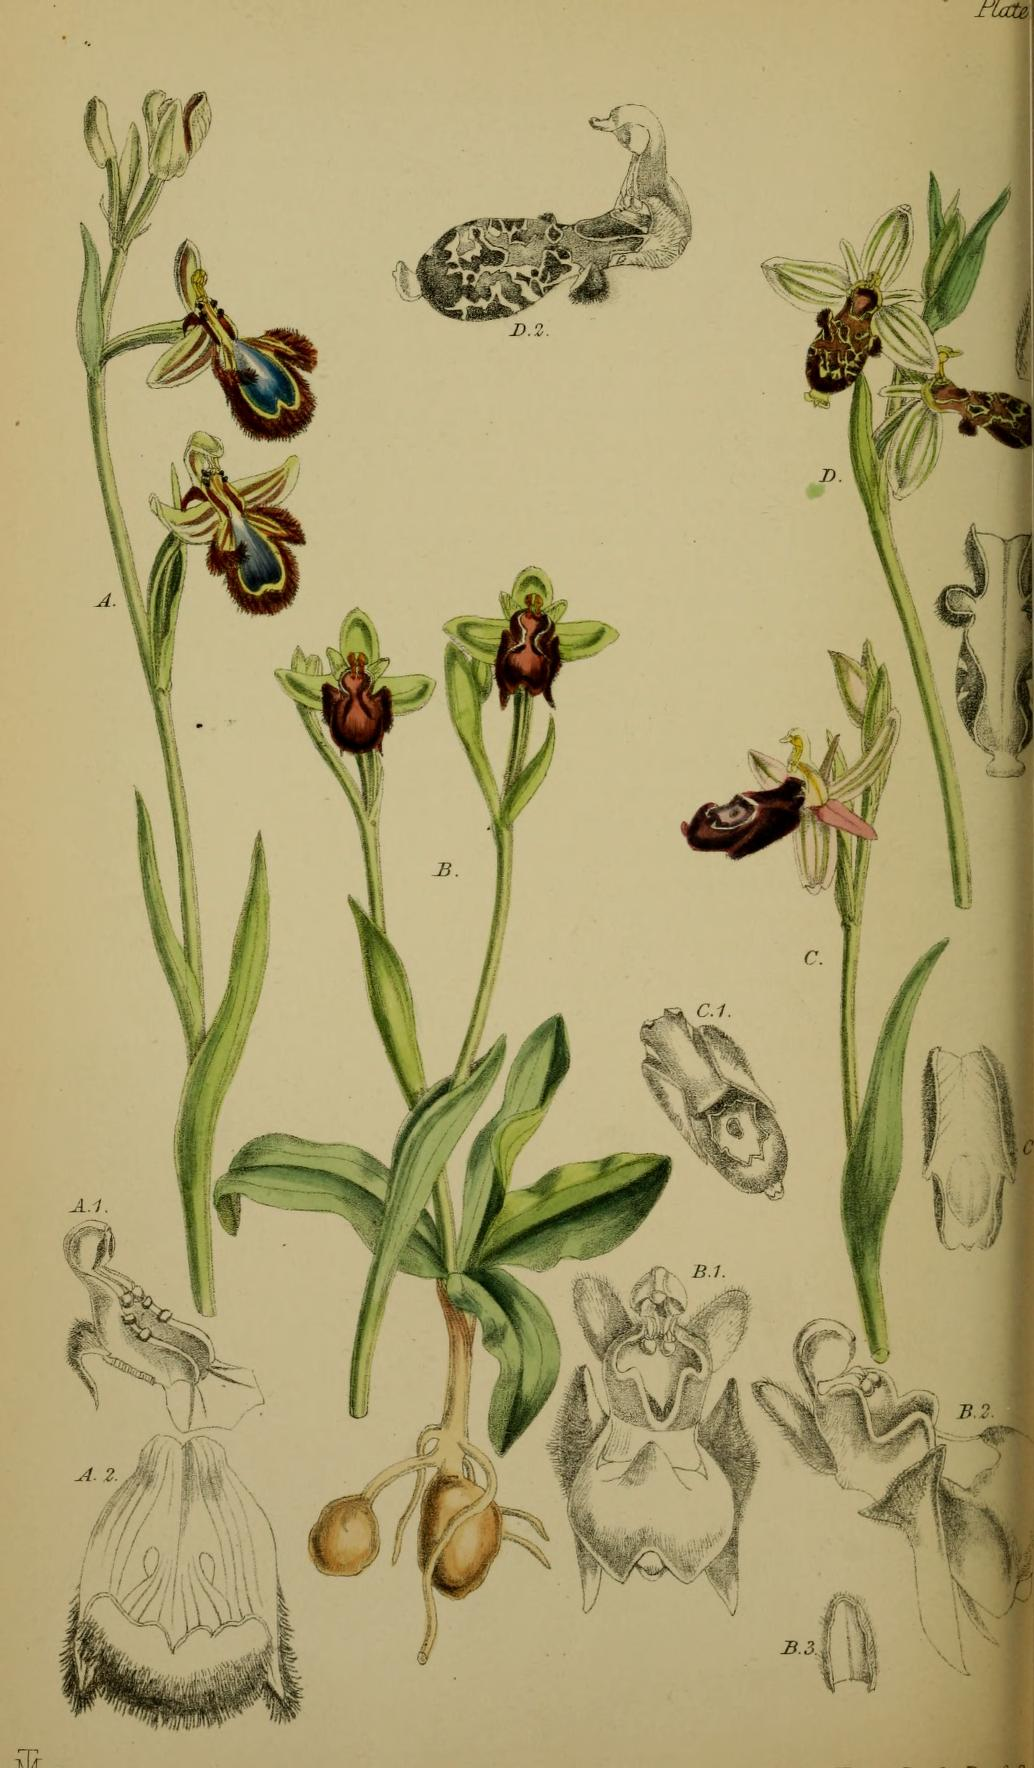 https://upload.wikimedia.org/wikipedia/commons/c/cc/Ophrys_speculum_-_O._bombyliflora_-_O._bertolonii_-_O._insectifera_-_Moggridge_-_Flora_of_Mentone_pl._72_(1871).jpg